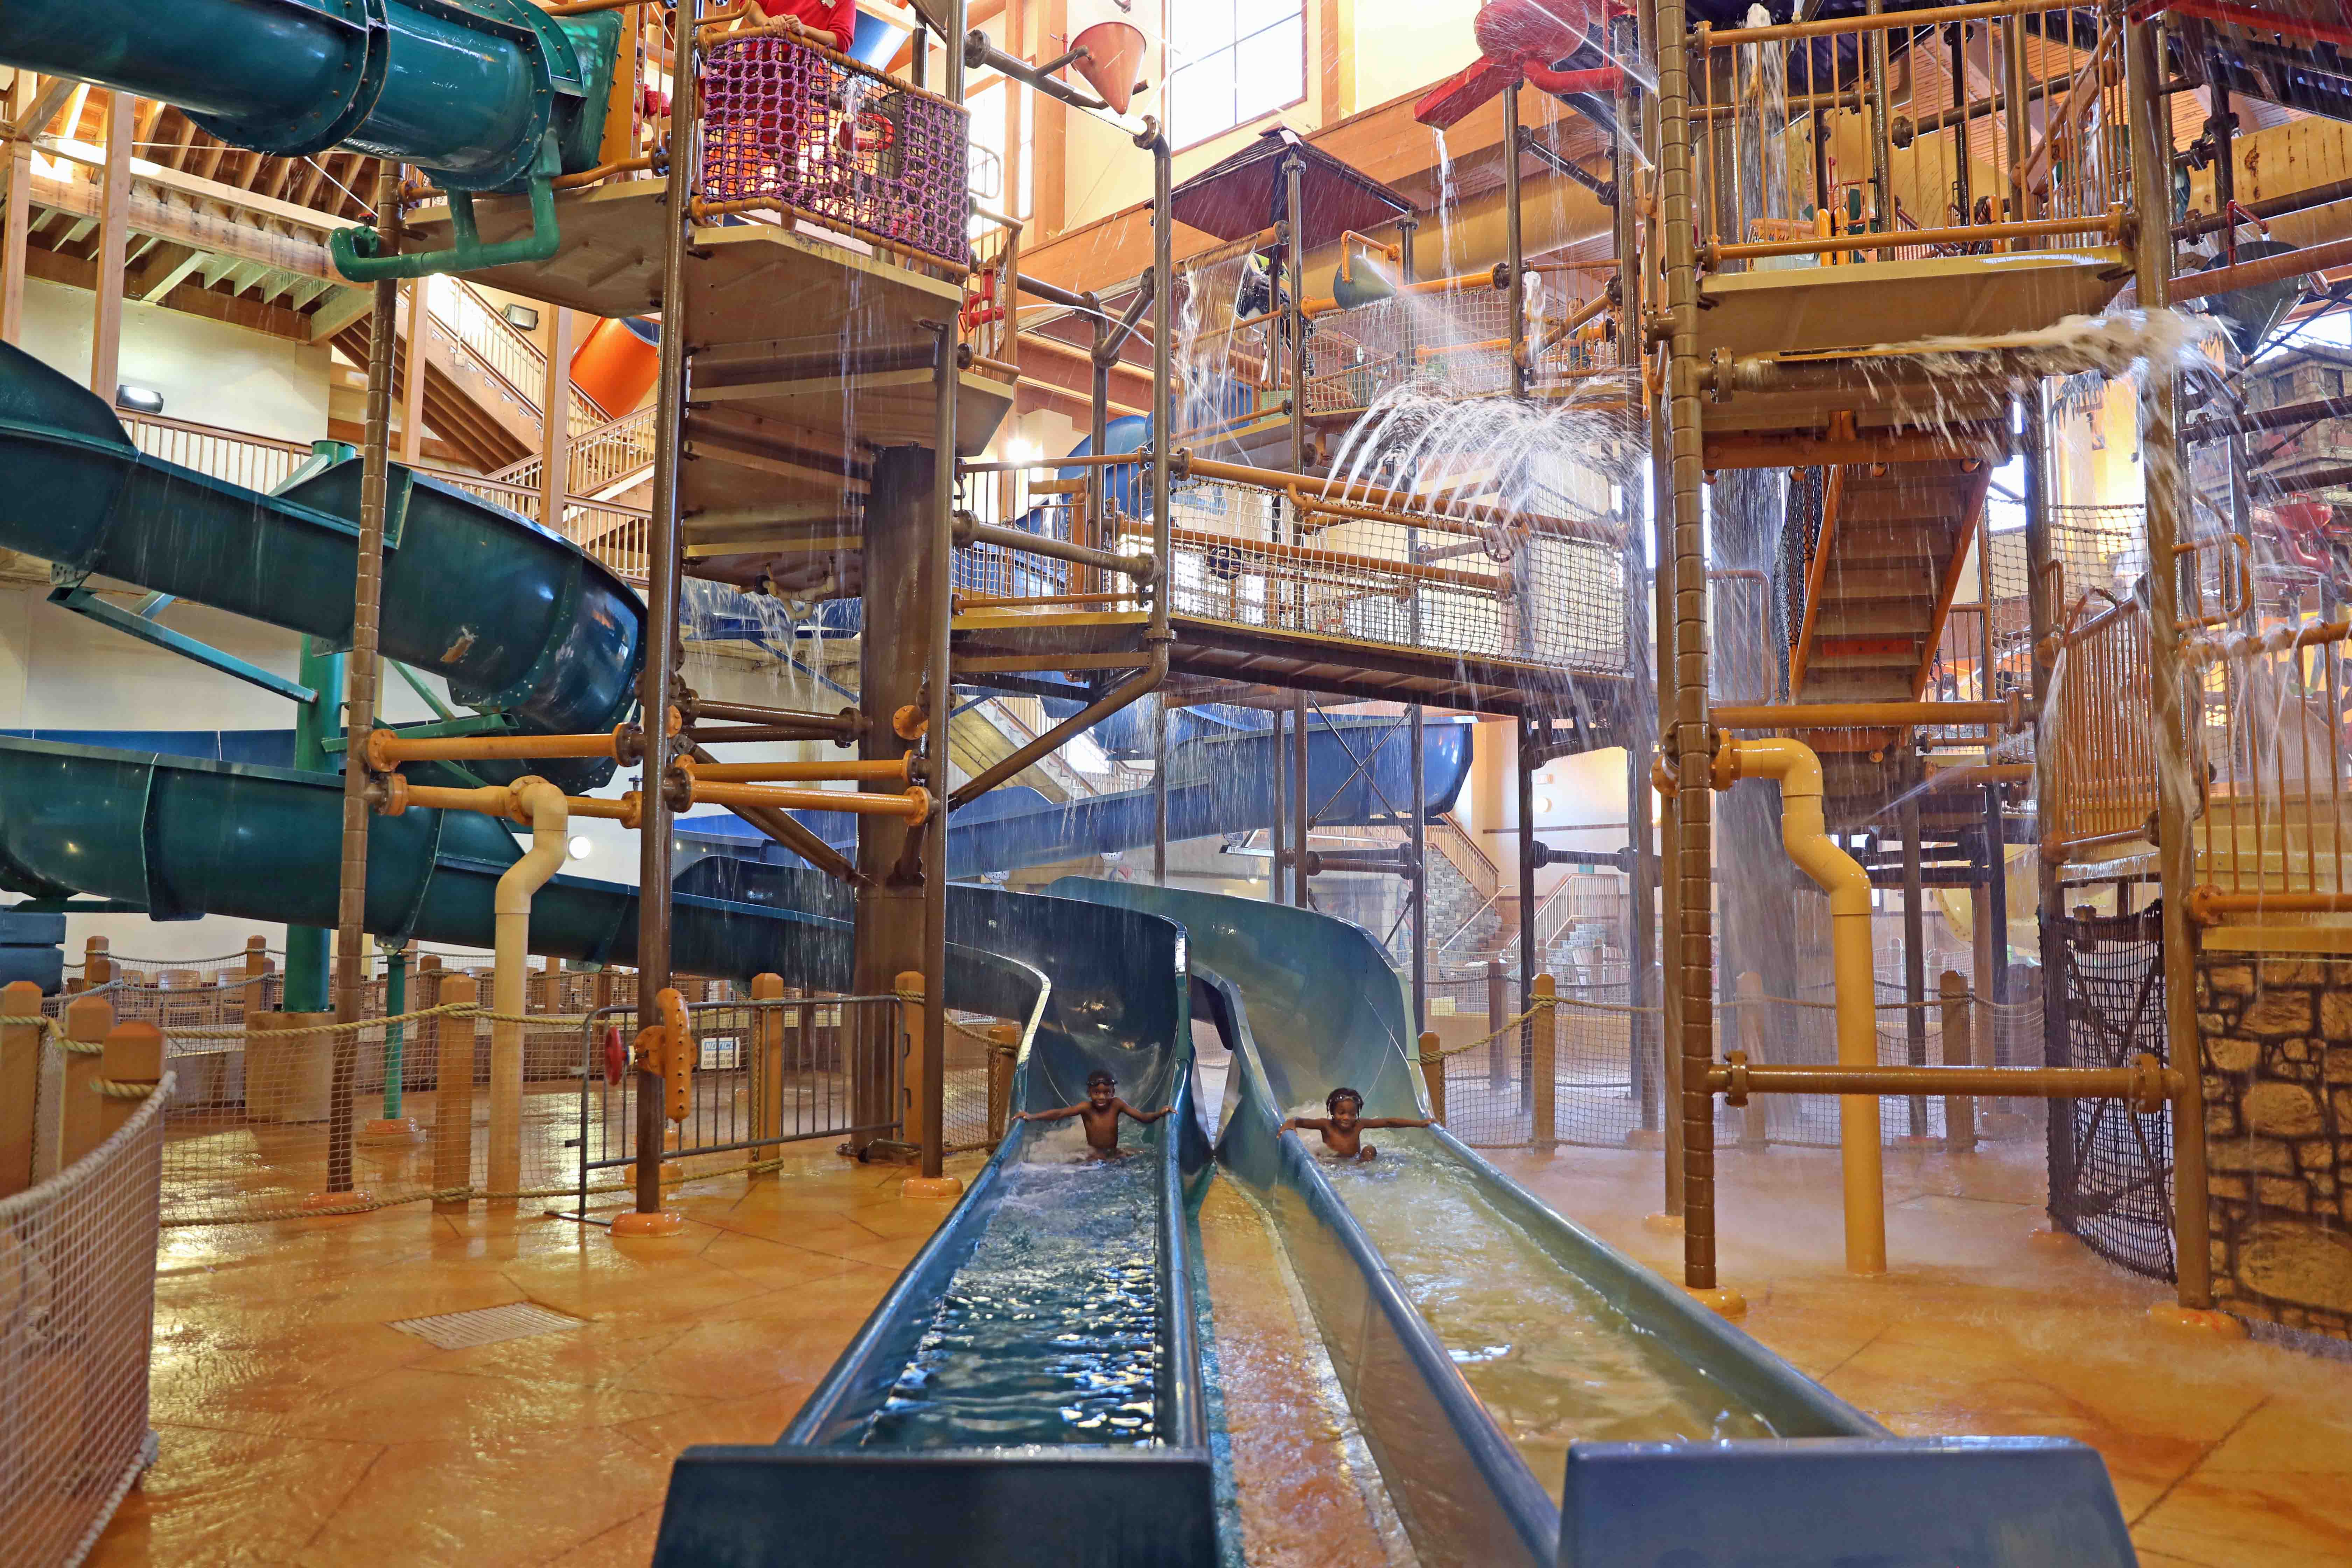 The Best Wisconsin Dells Water Parks Indoor Outdoor The Mom Trotter 701 superior st wisconsin dells, wi 53965. the mom trotter